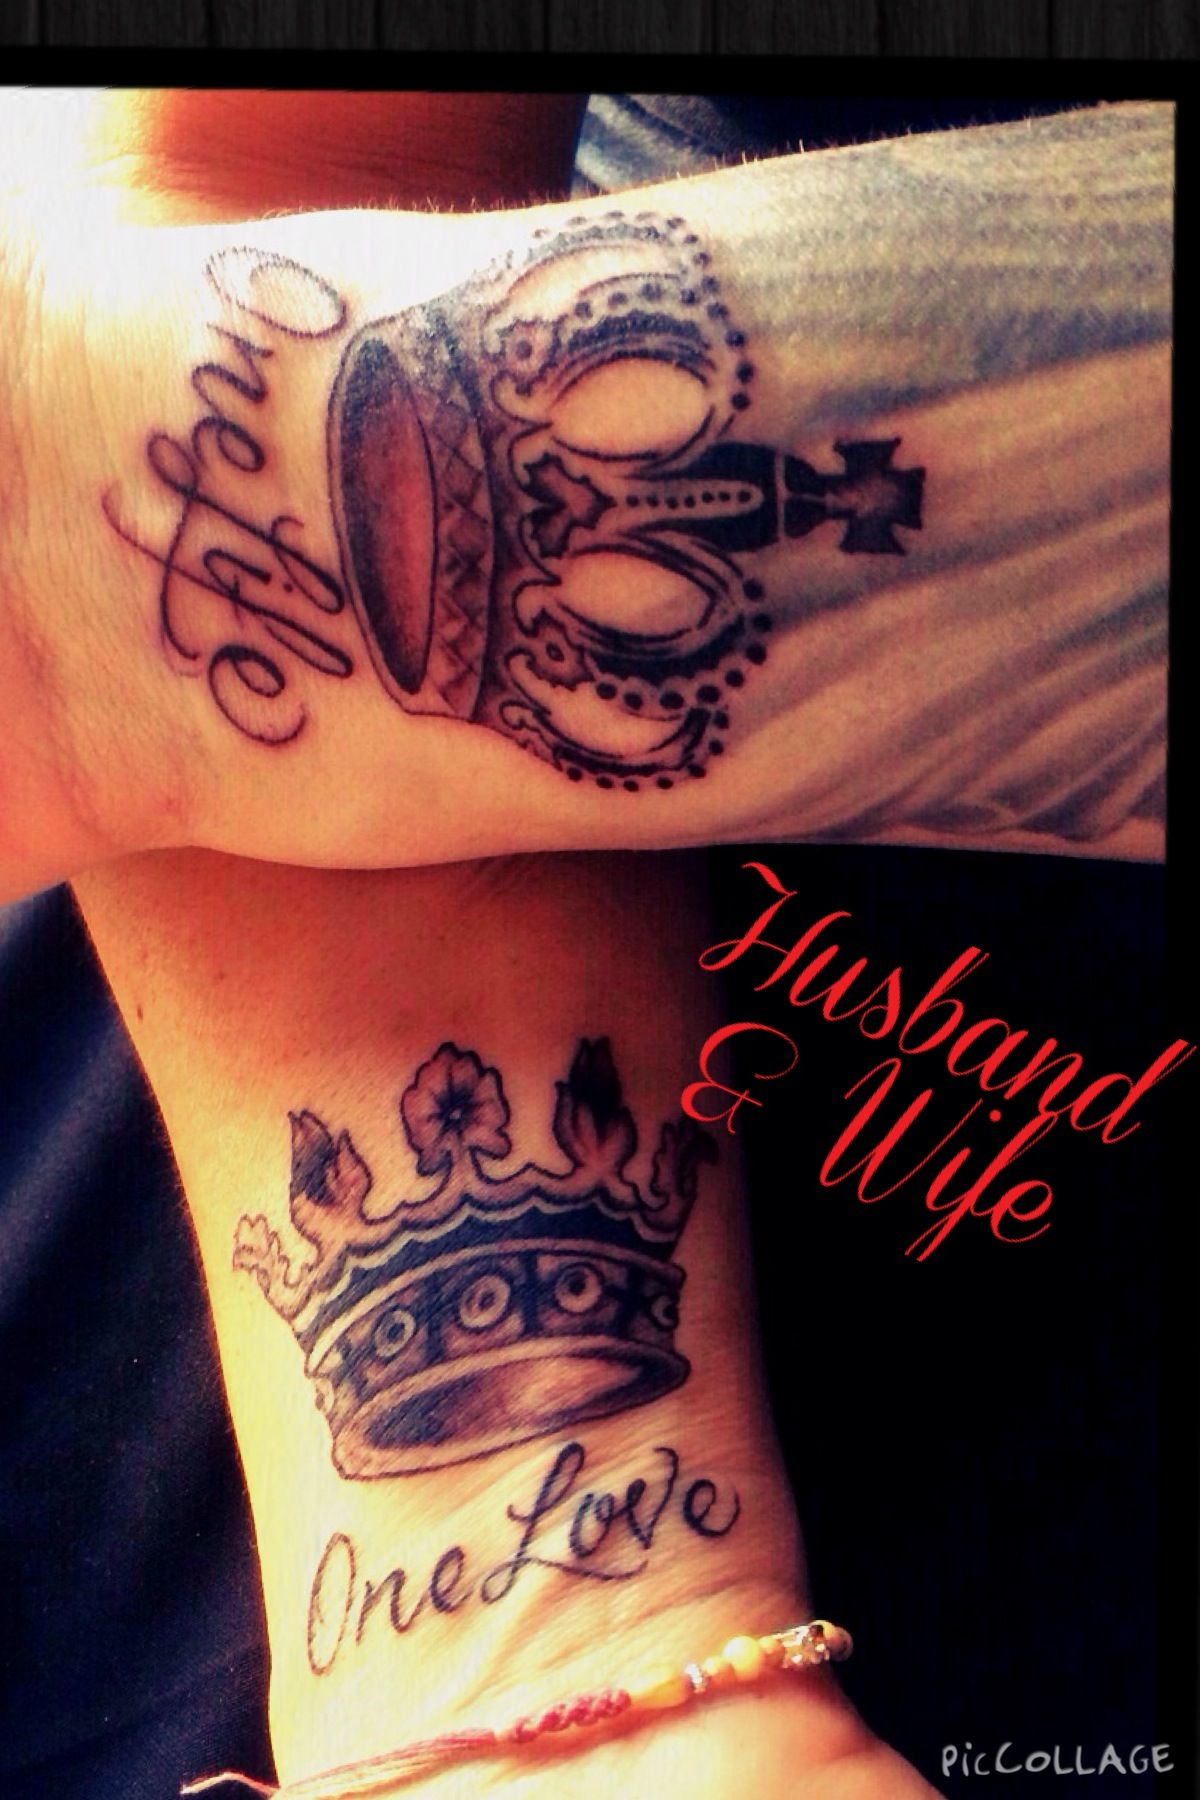 Husband And Wife Tattoo One Life One Love Mark And Jacque Ink